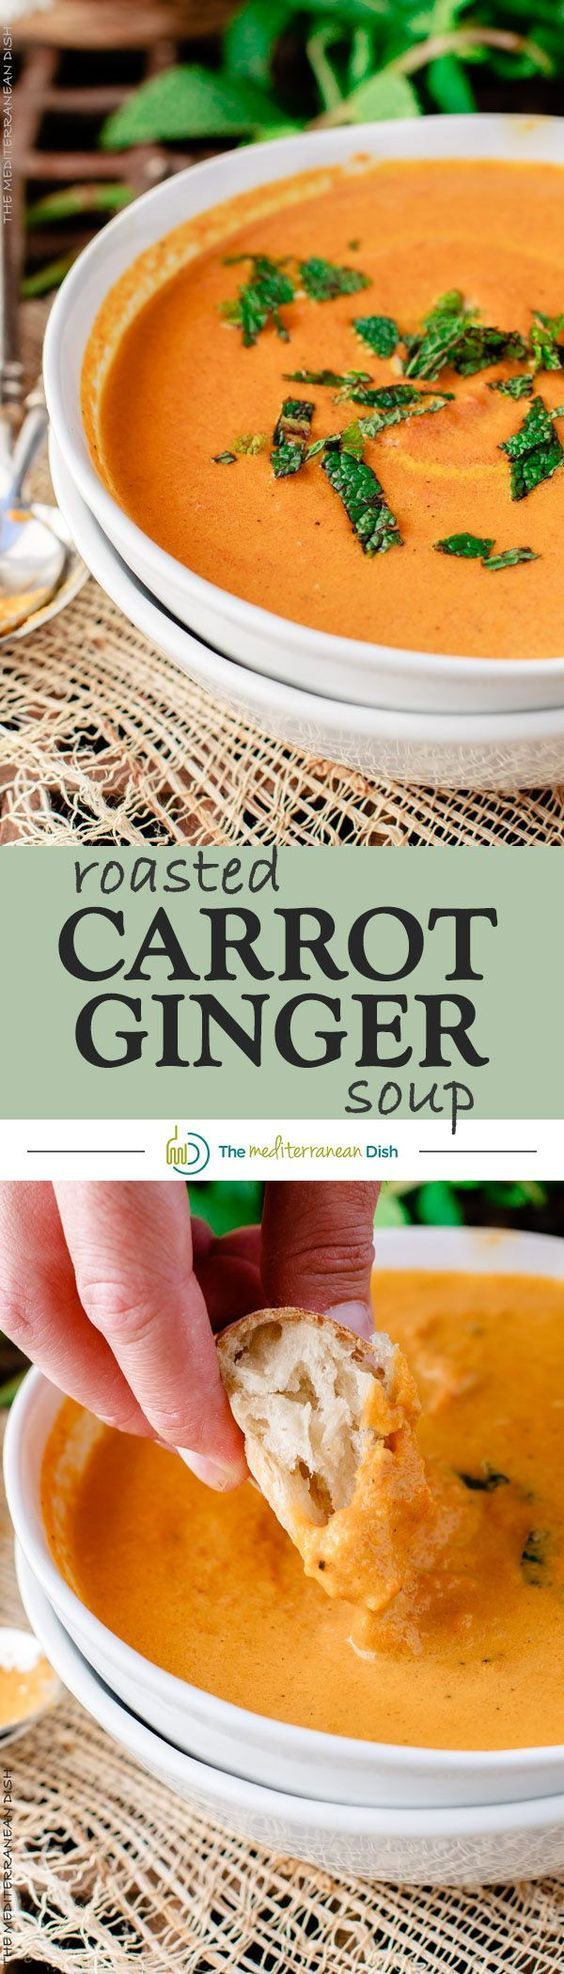 Roasted Carrot Ginger Soup - An easy roasted carrot soup prepared with Mediterranean spices, garlic, fresh ginger and a touch of fresh mint.